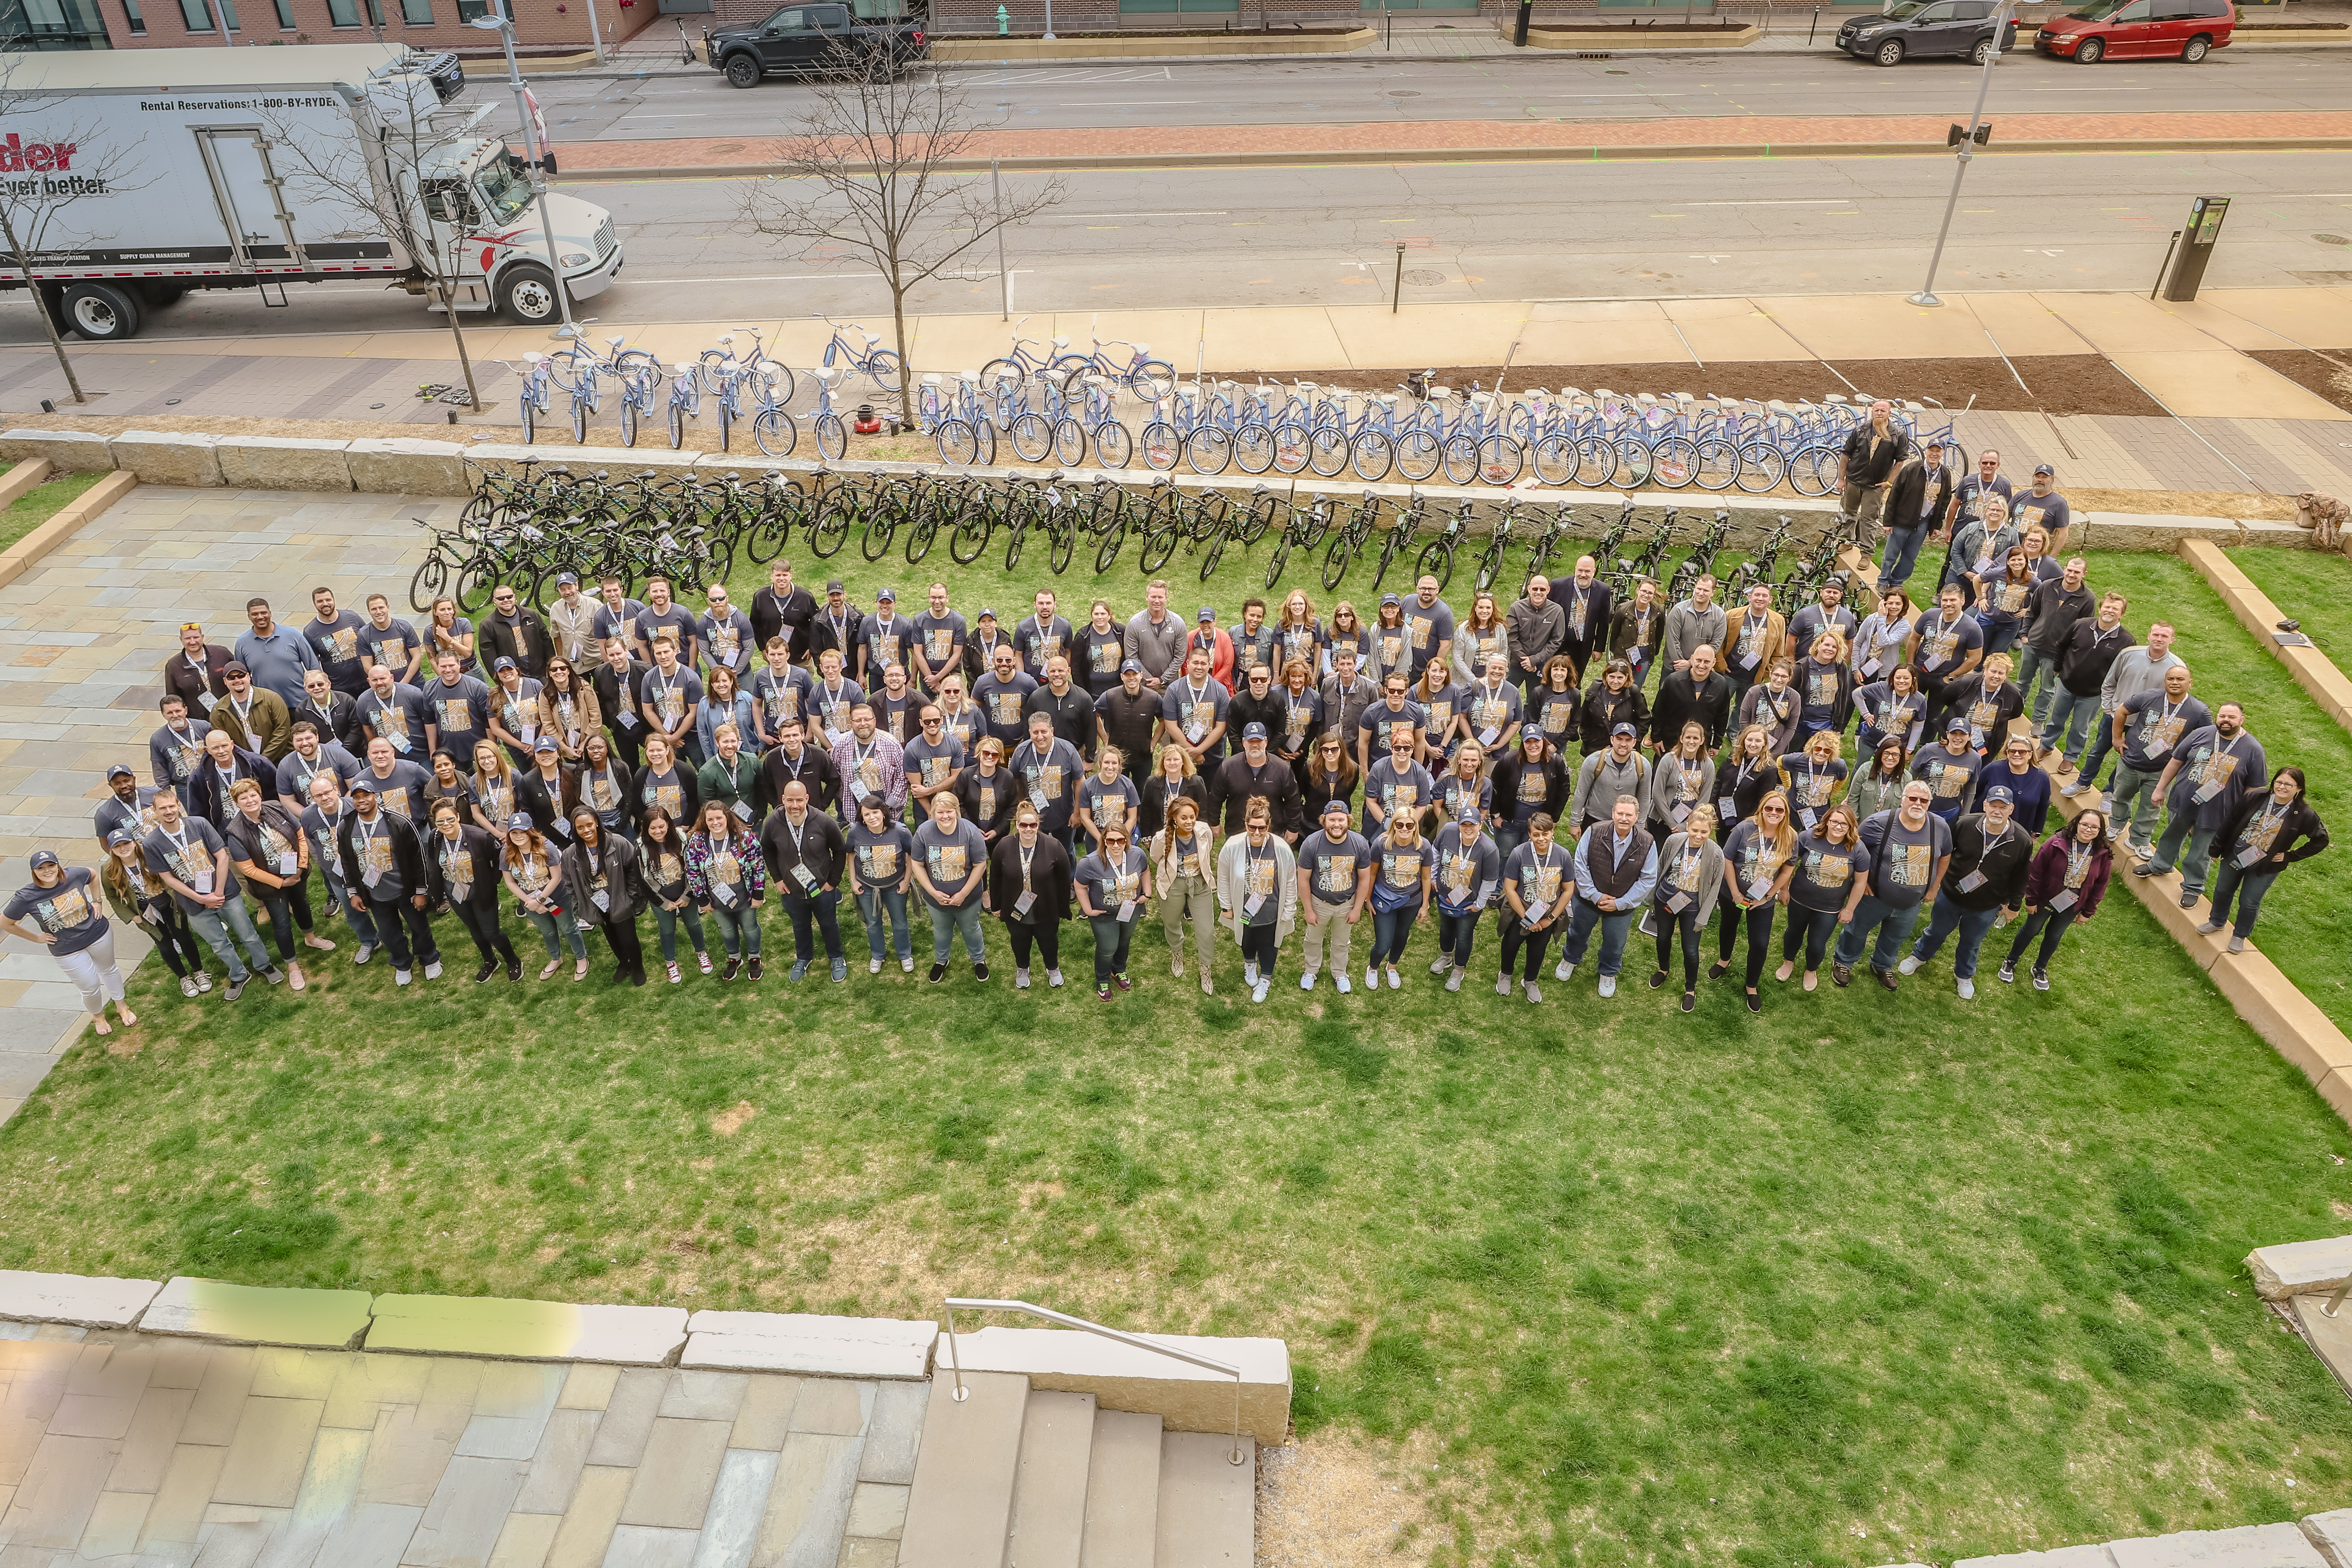 Buckingham Companies employees gathered on lawn near bikes recently built during volunteer project